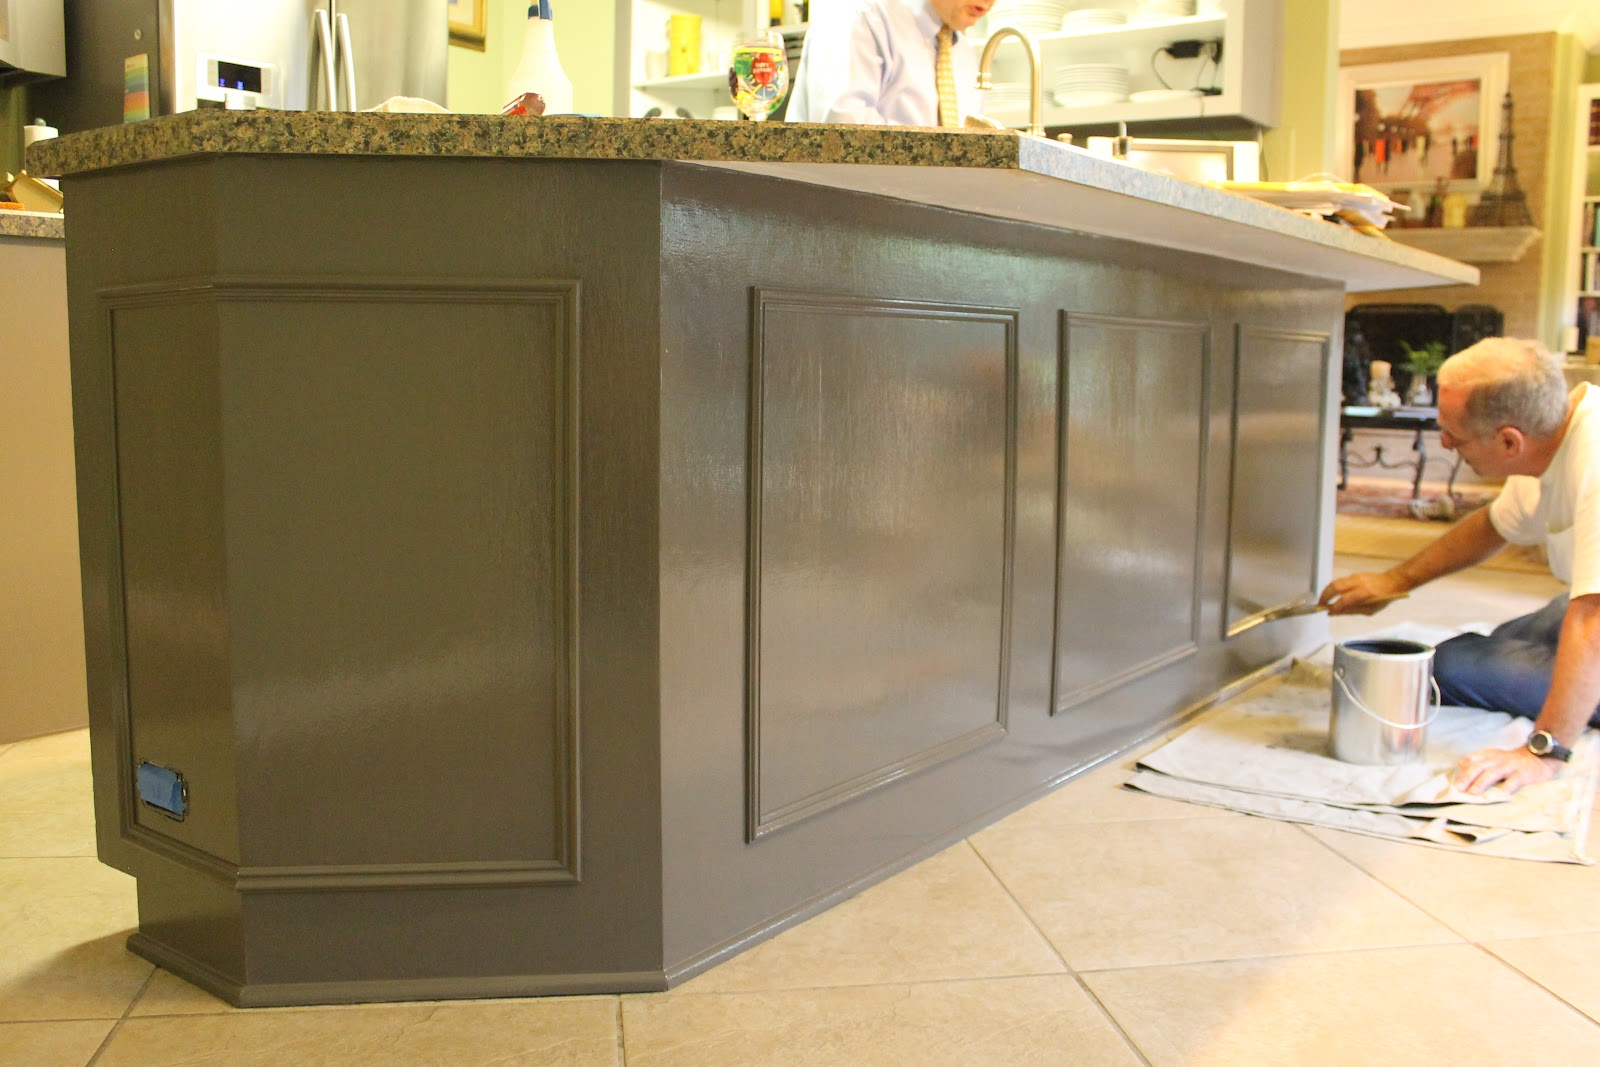 the cabinets look very shiny The cabinets were painted with oil based